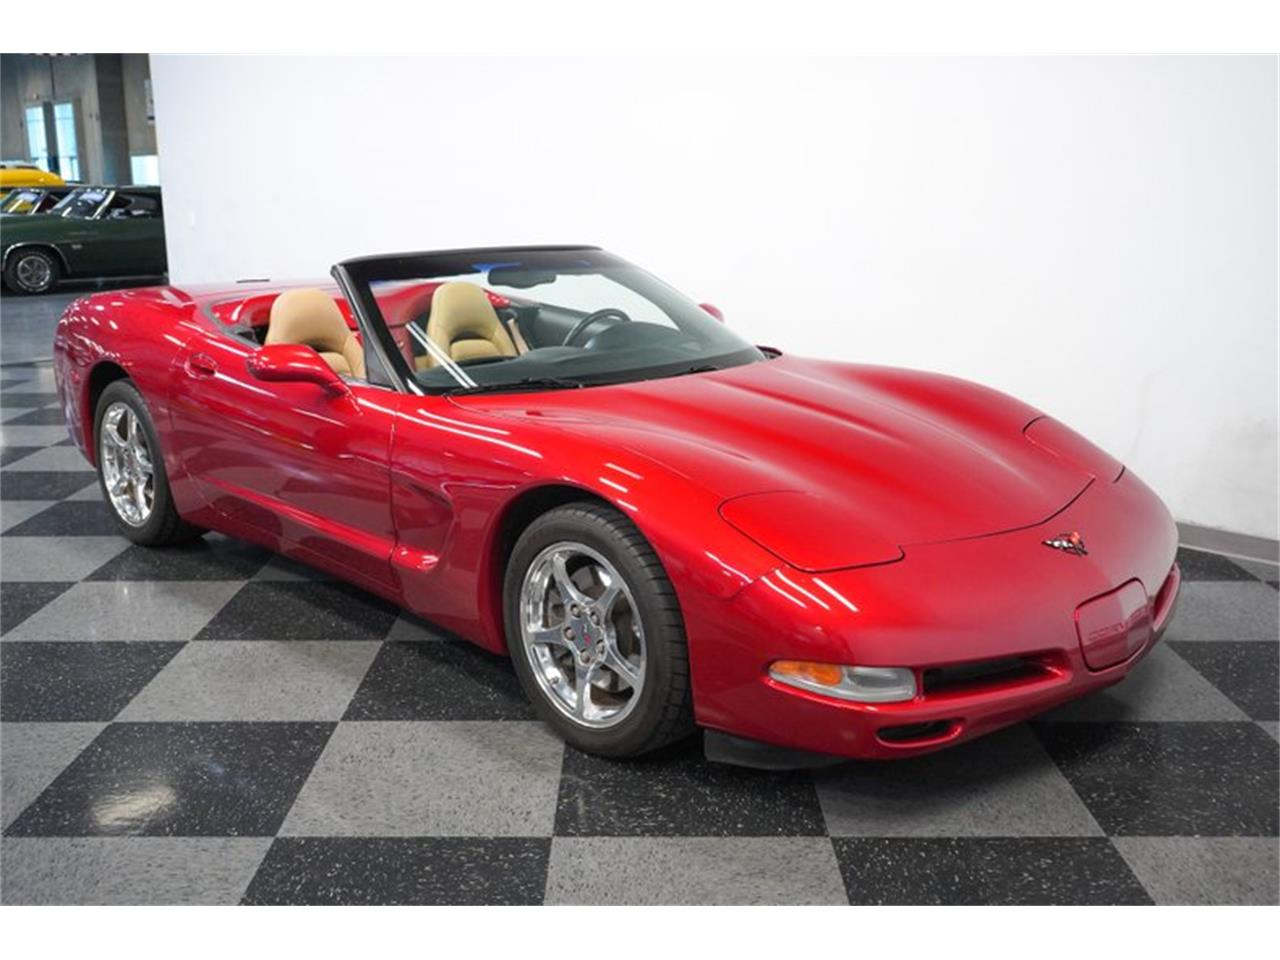 2002 Chevrolet Corvette (CC-1357875) for sale in Mesa, Arizona